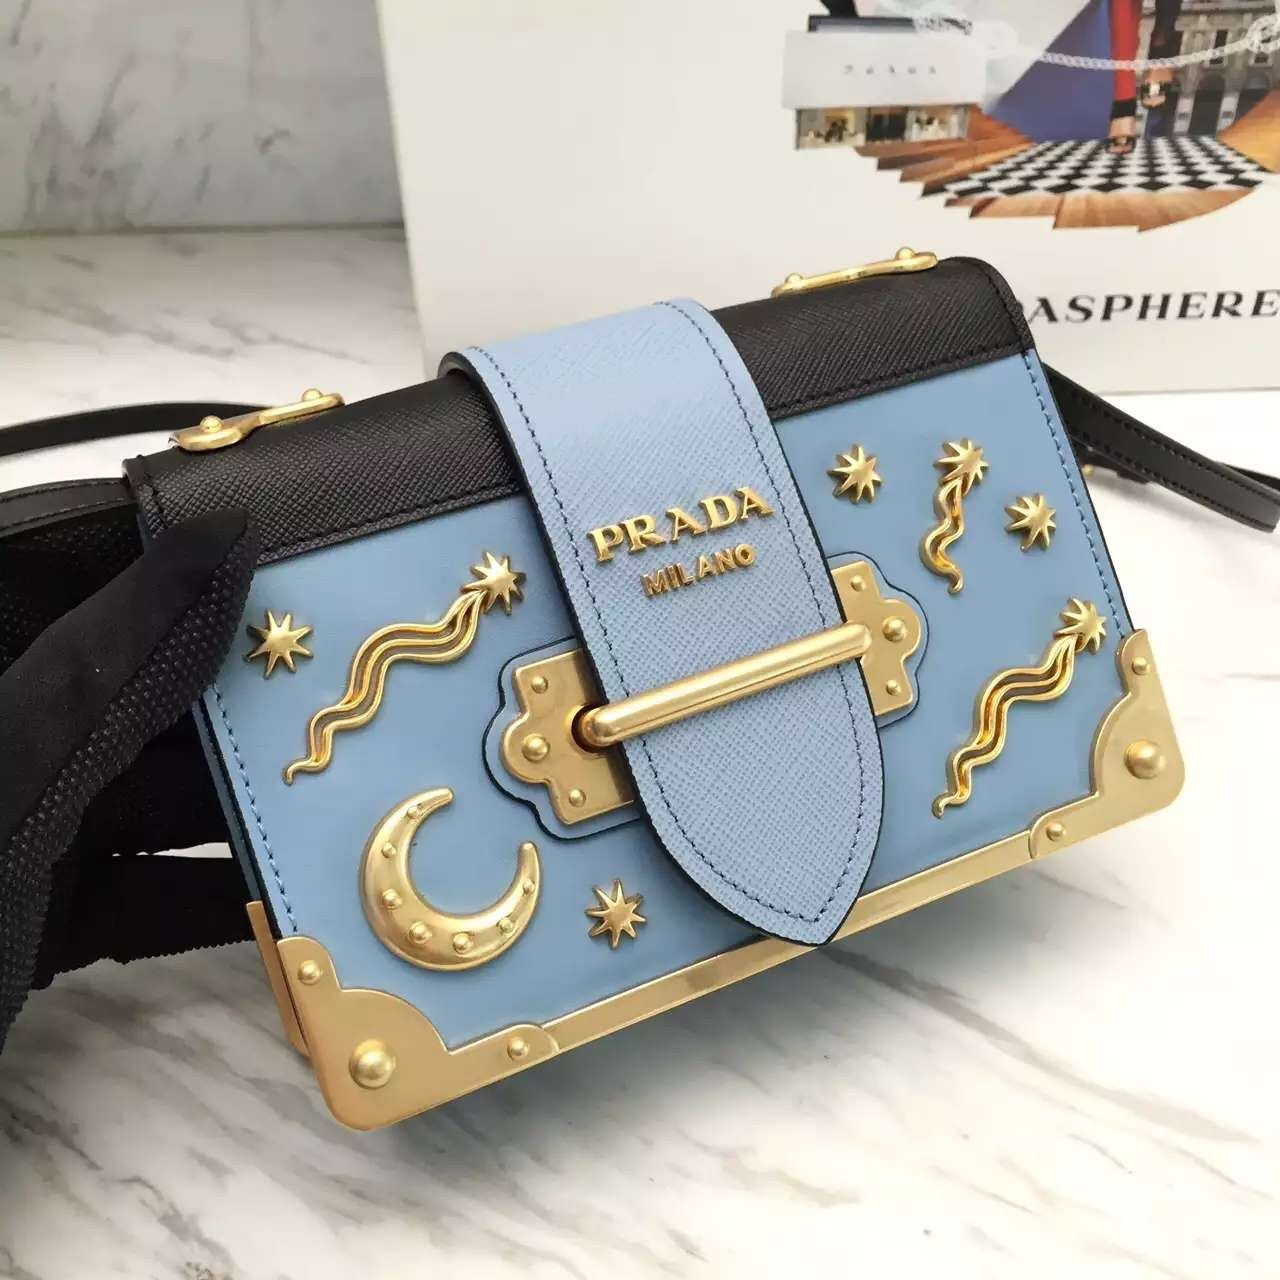 95a576170637db Replica Prada Moon x Stars Cahier Bag 1BH018 light blue | Clothes ...